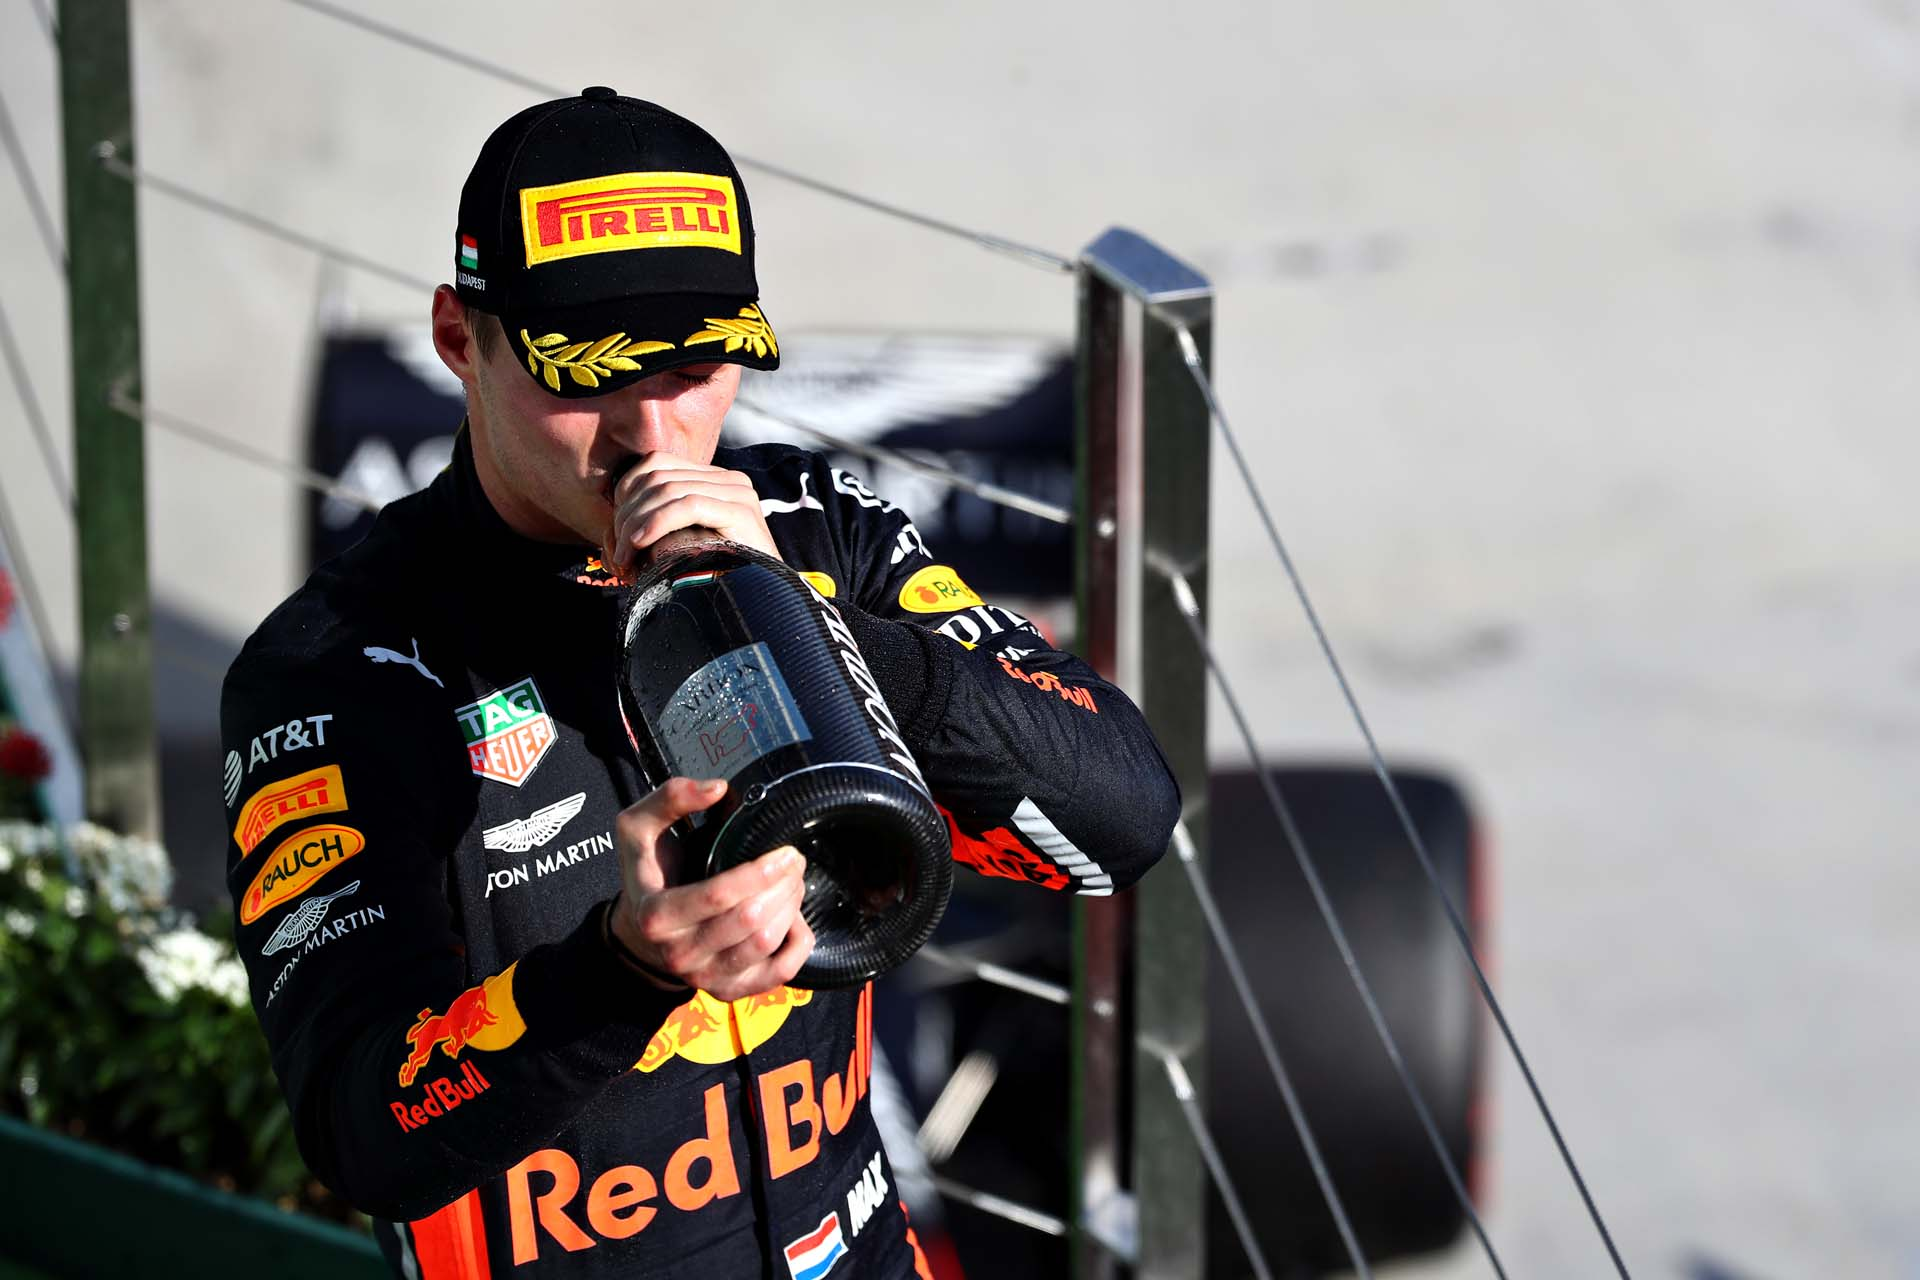 BUDAPEST, HUNGARY - AUGUST 04: Second placed Max Verstappen of Netherlands and Red Bull Racing celebrates on the podium during the F1 Grand Prix of Hungary at Hungaroring on August 04, 2019 in Budapest, Hungary. (Photo by Mark Thompson/Getty Images) // Getty Images / Red Bull Content Pool  // AP-215JMRMTW1W11 // Usage for editorial use only // Please go to www.redbullcontentpool.com for further information. //